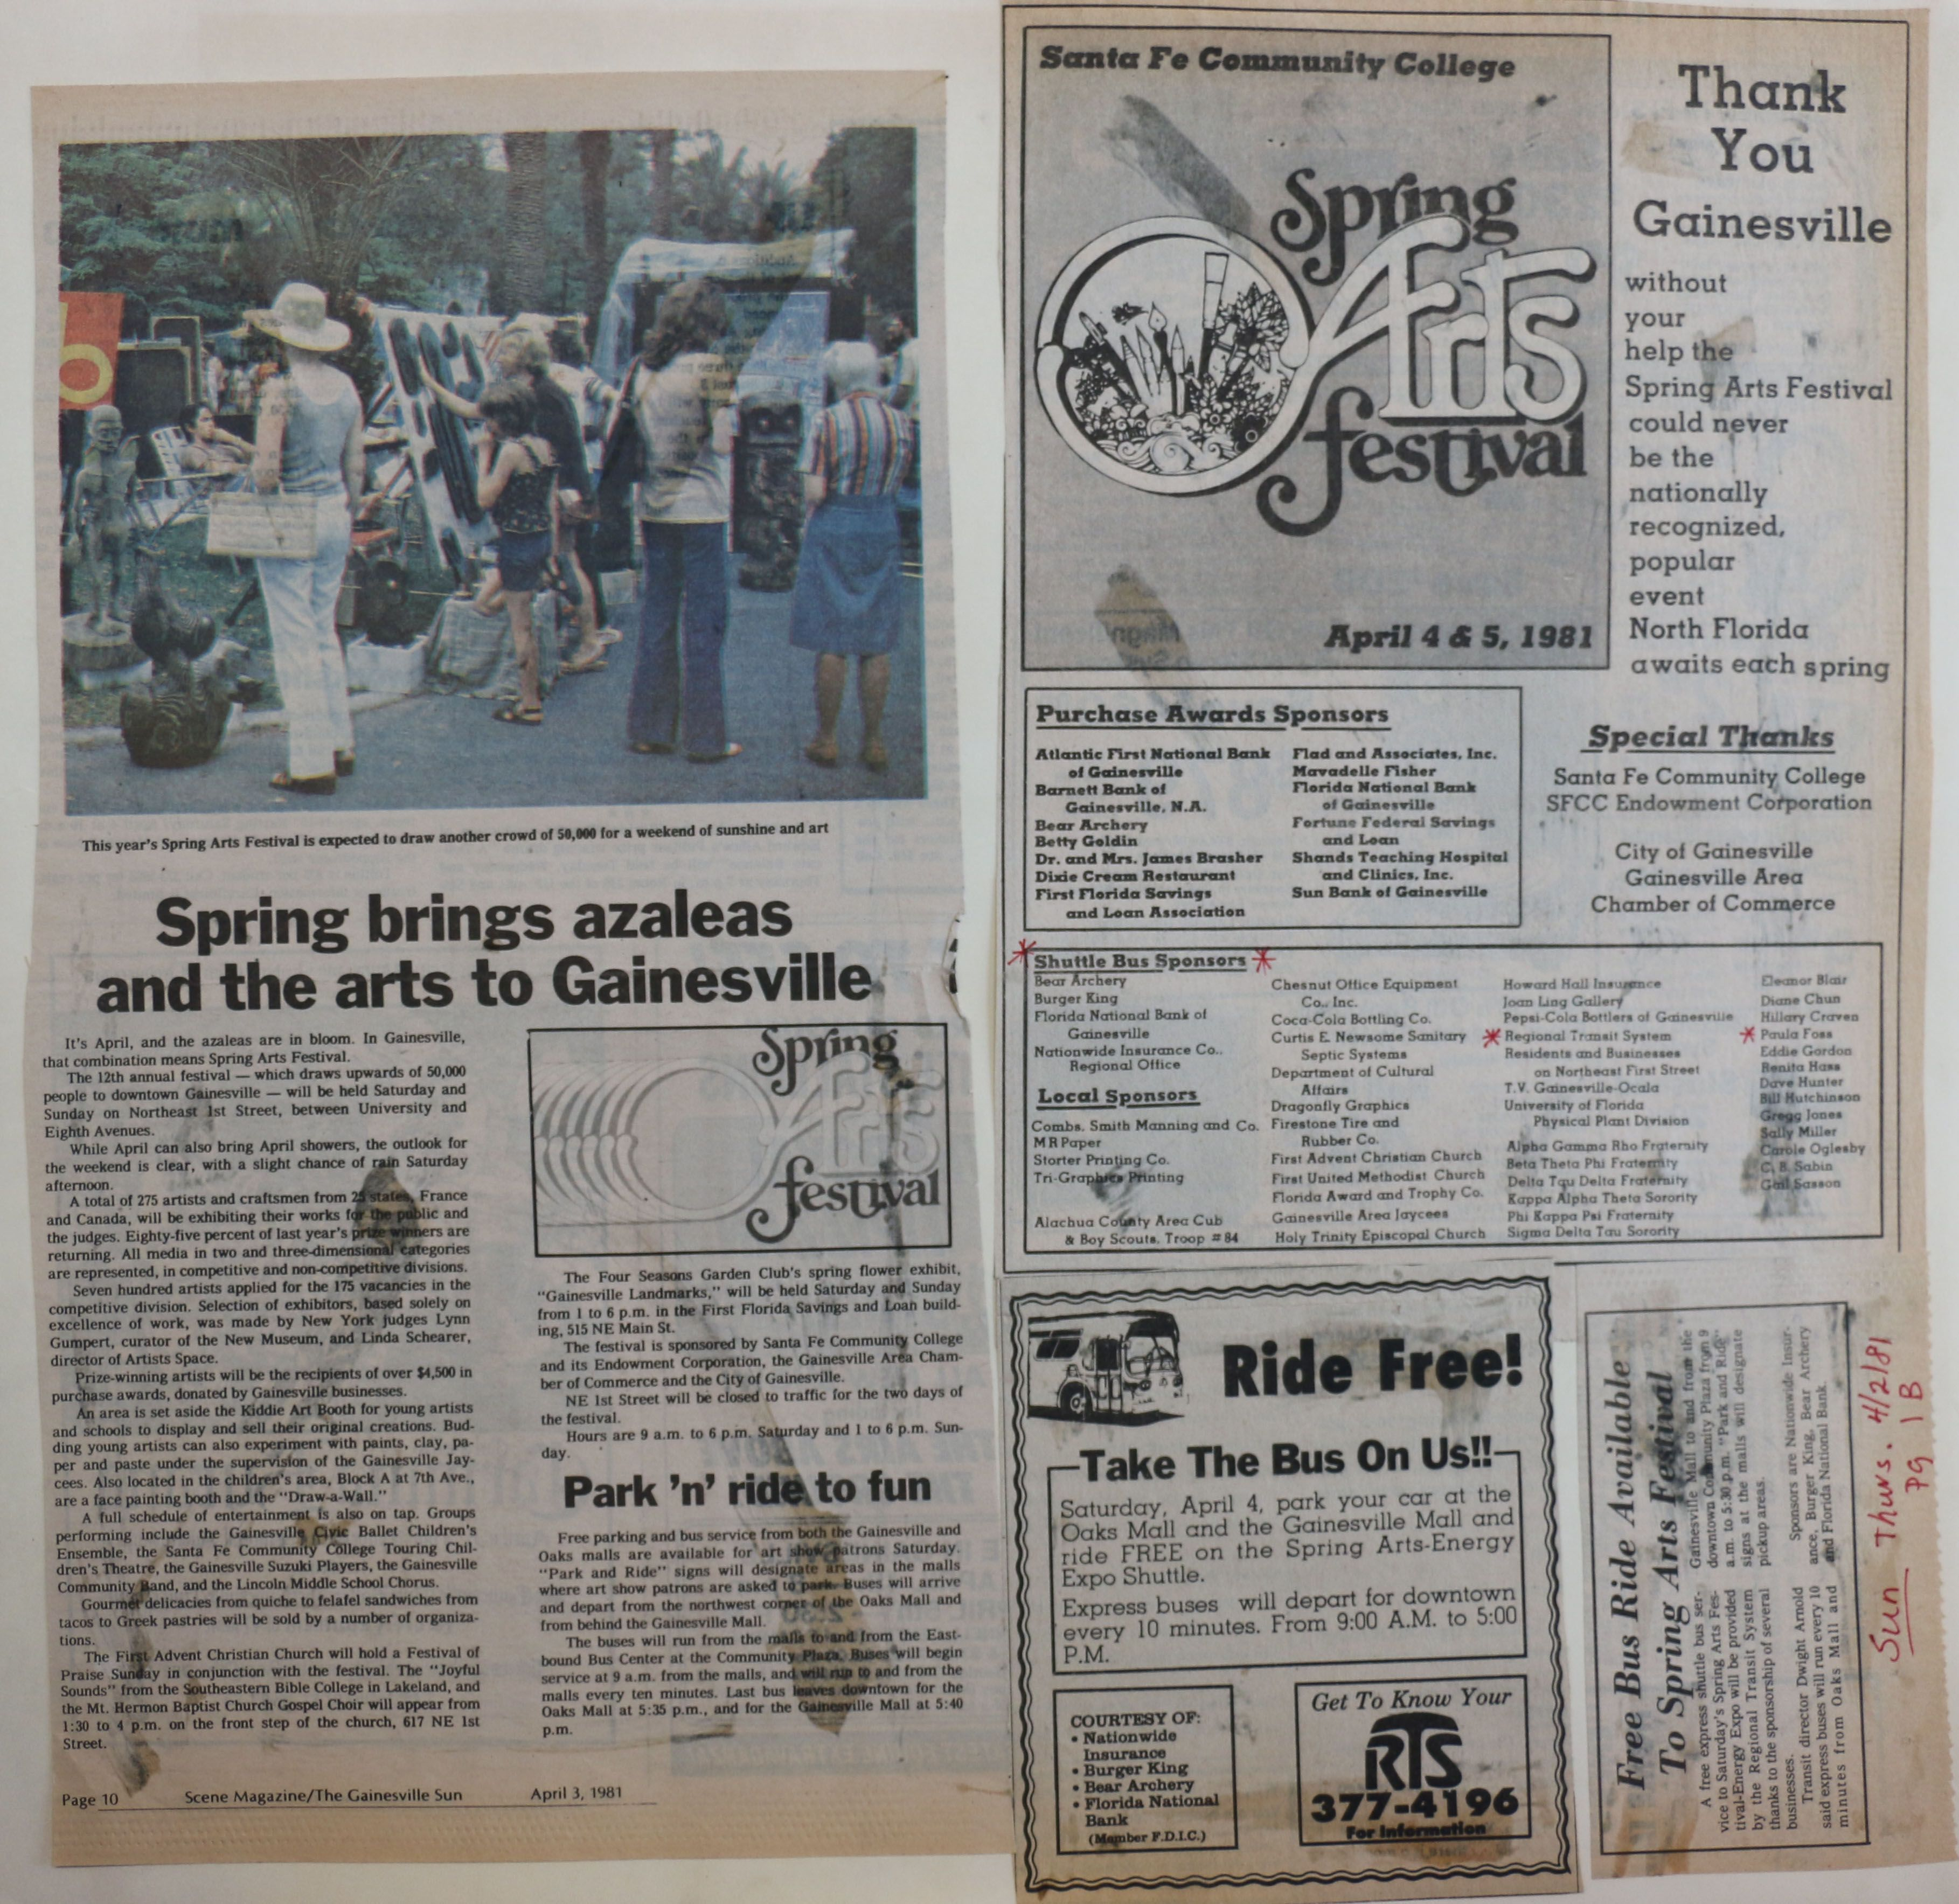 News Article From Sun 4 3 81 Ads For Rts And Arts Festival